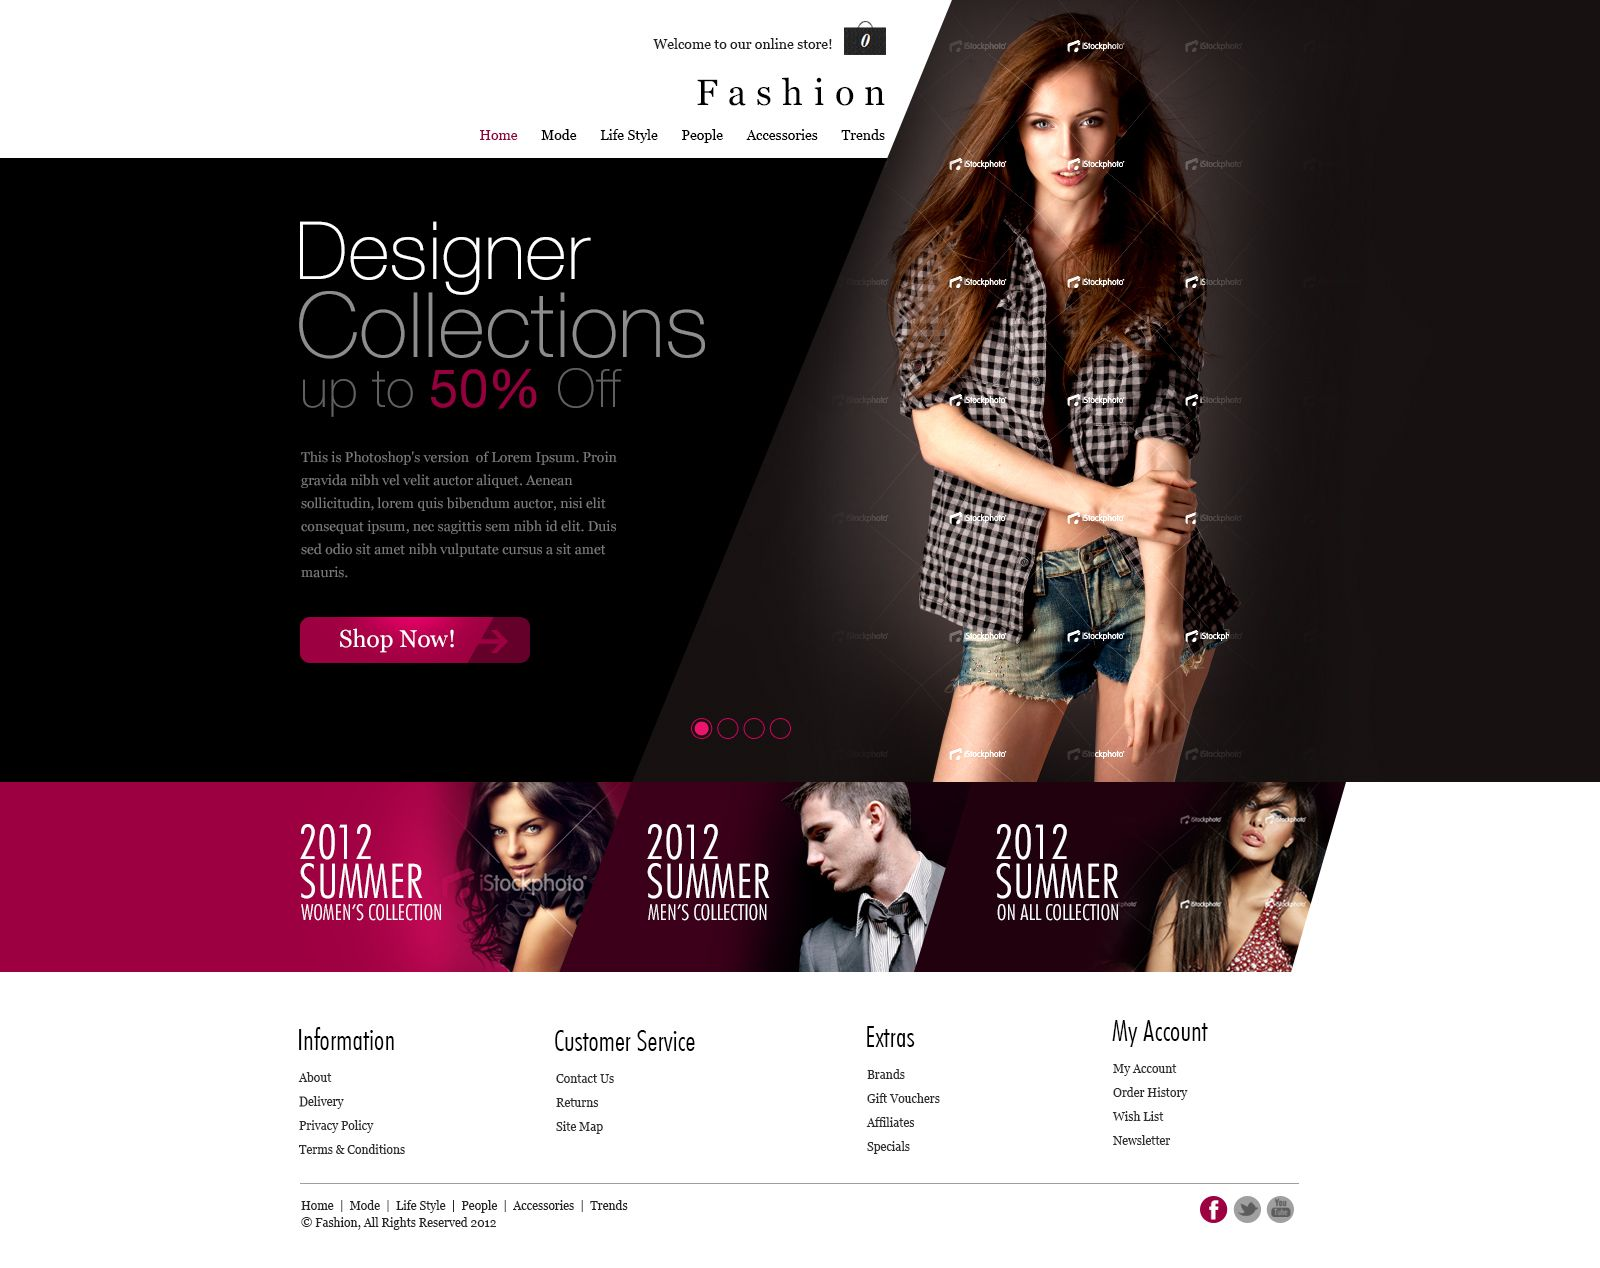 DesignerCollections